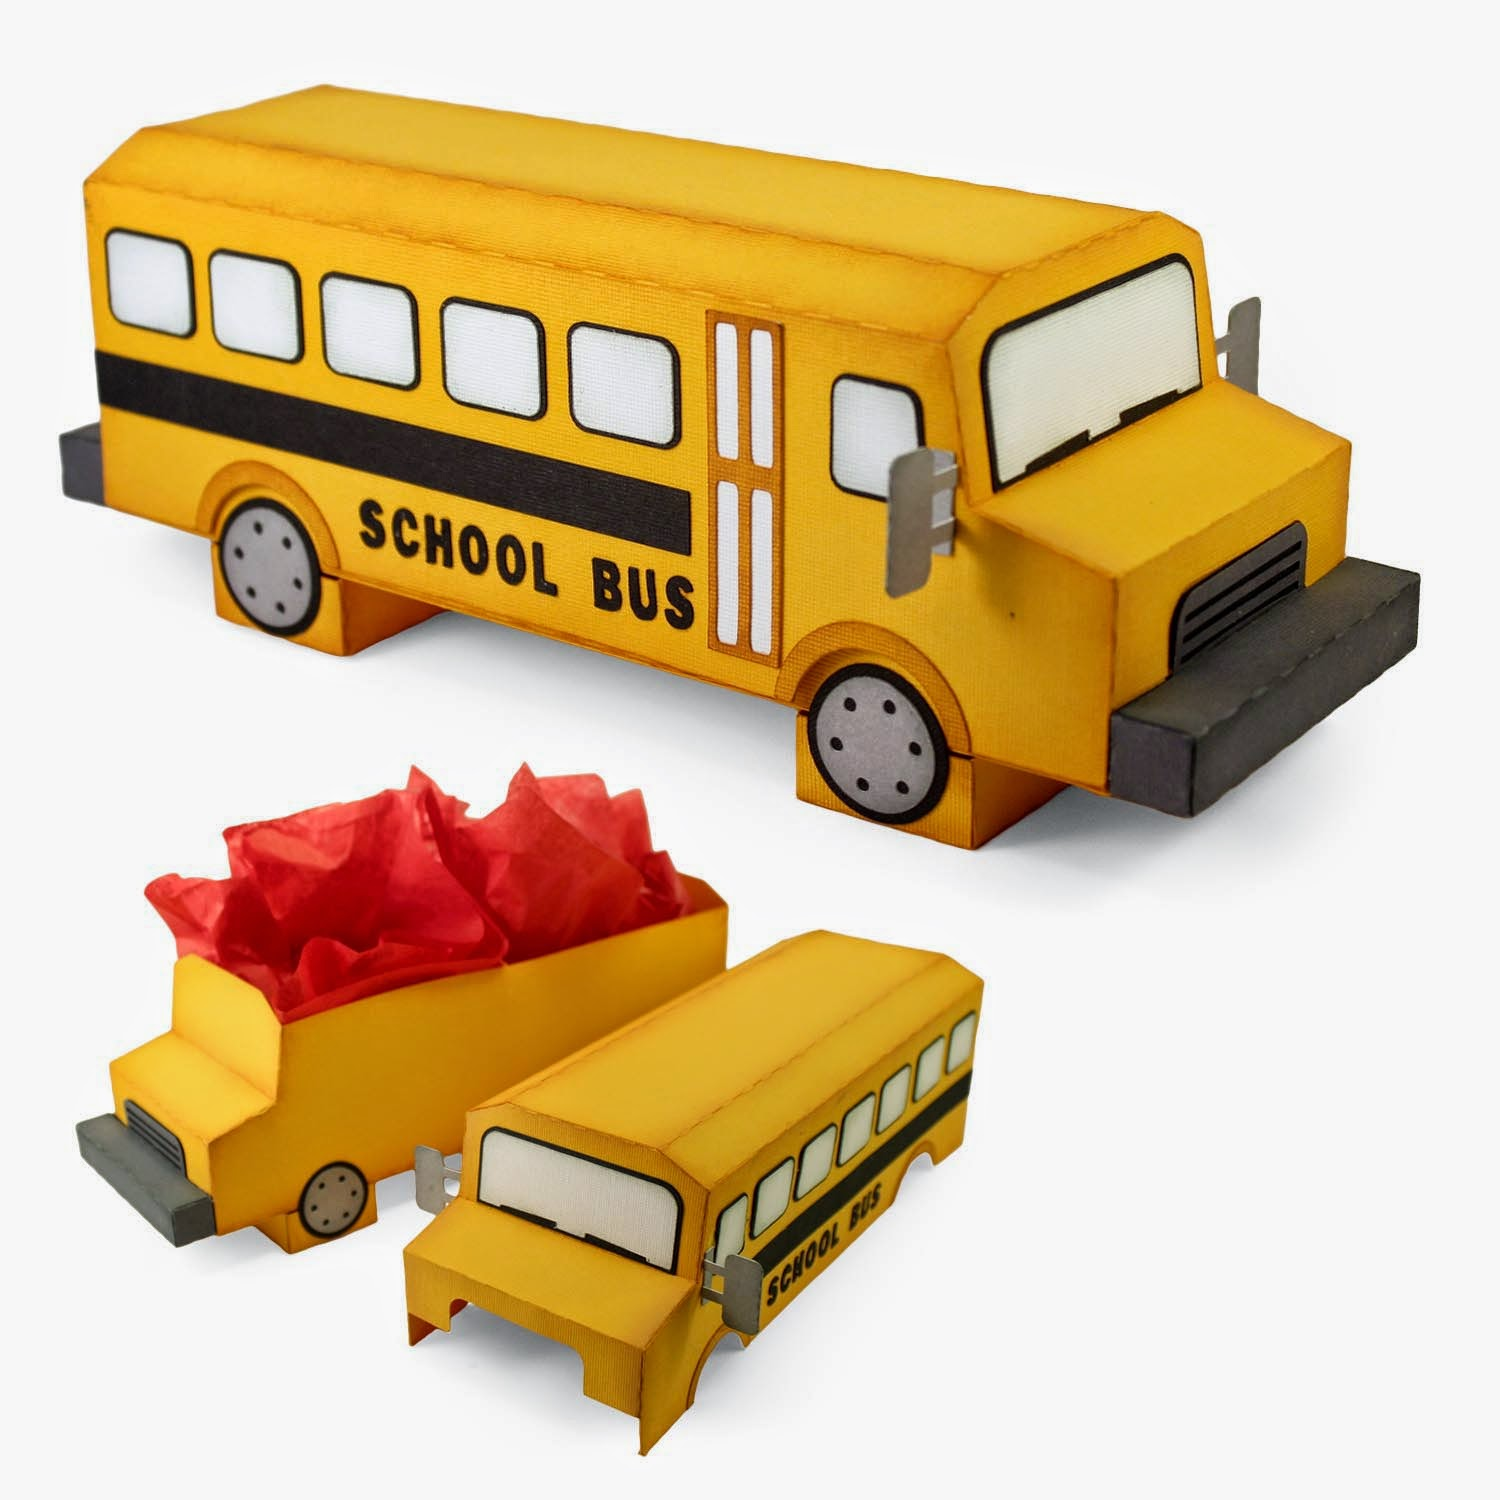 Roof of School Bus 3d School Bus Box Tutorial